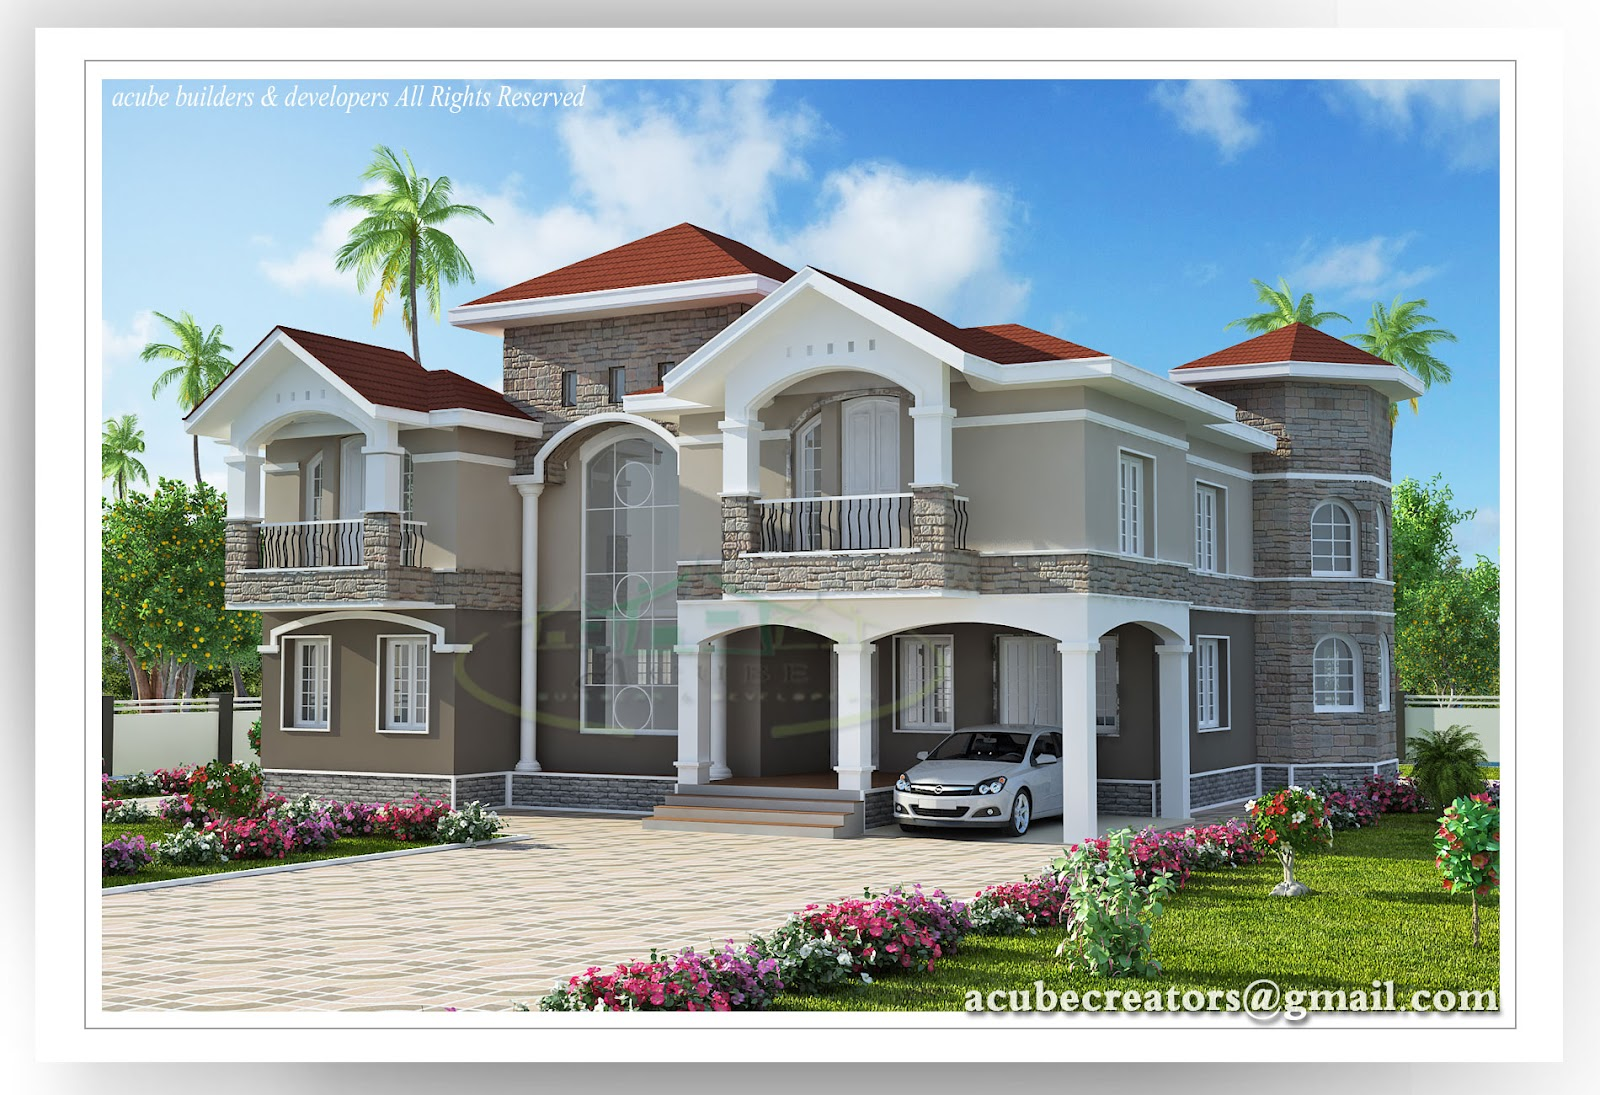 4 bedroom double floor indian luxury home design 3447 sqft plan 143 house details - Indian House Designs Double Floor